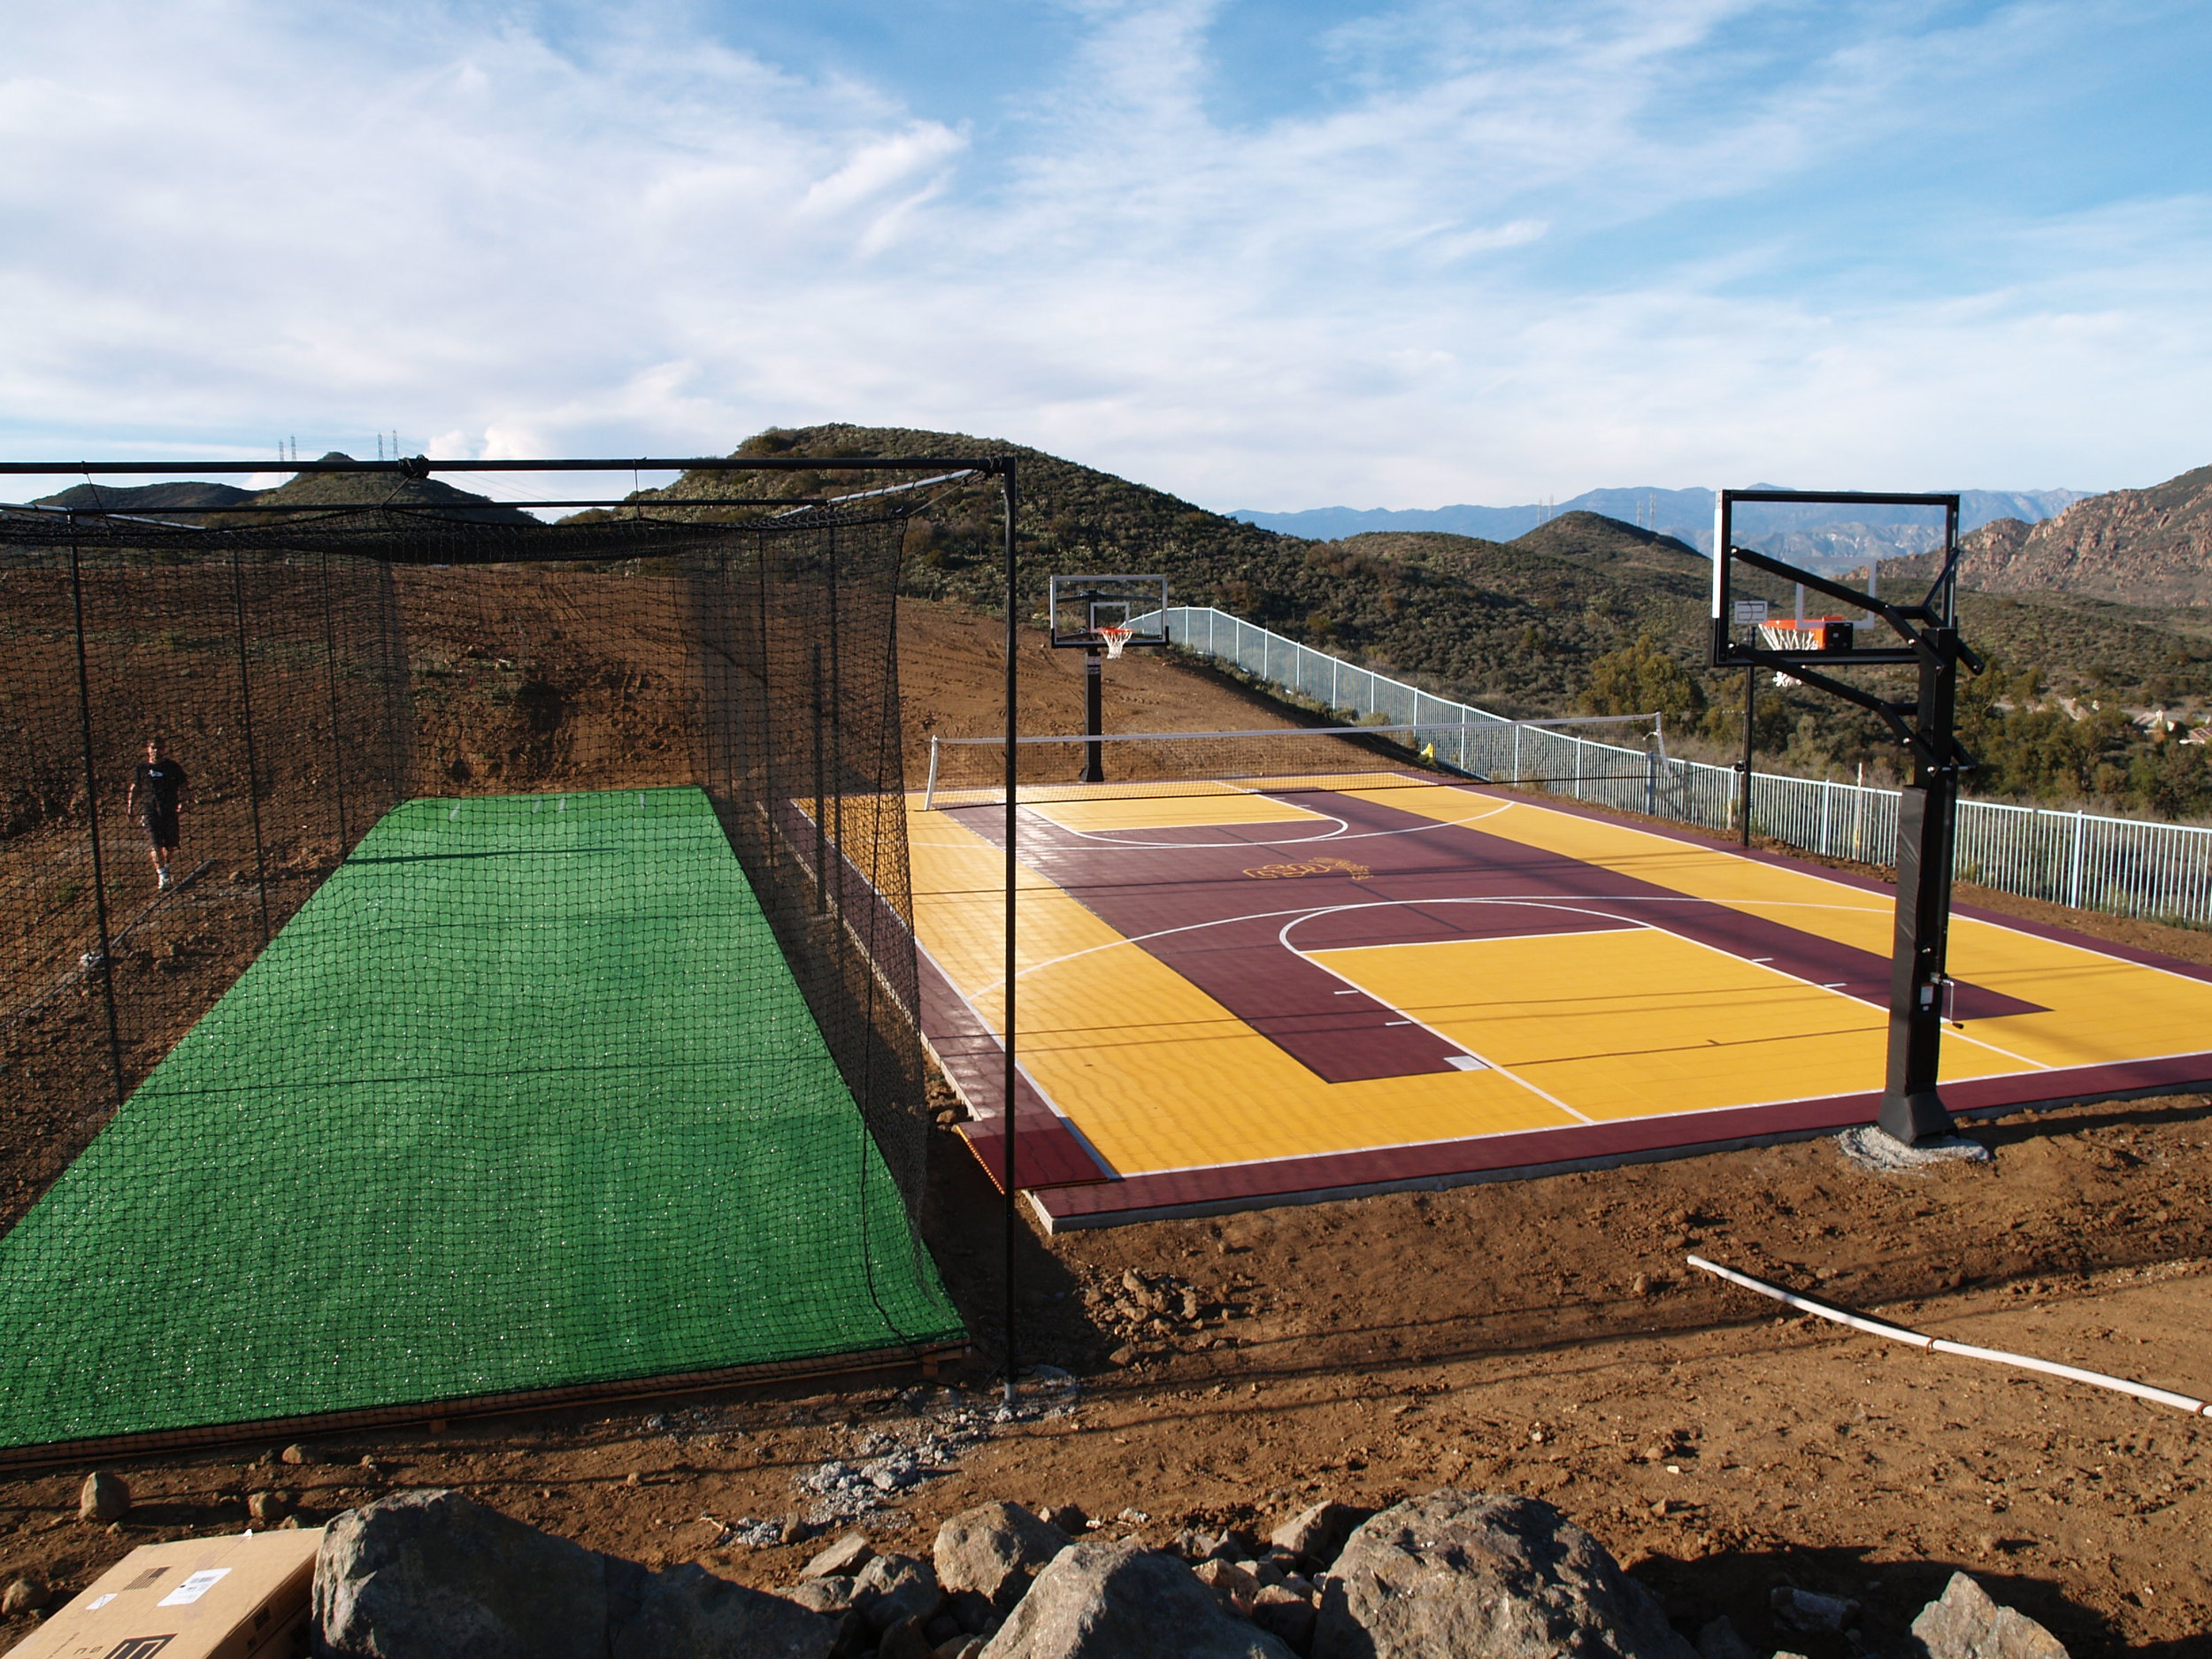 Synthetic grass batting cage by Sport Court